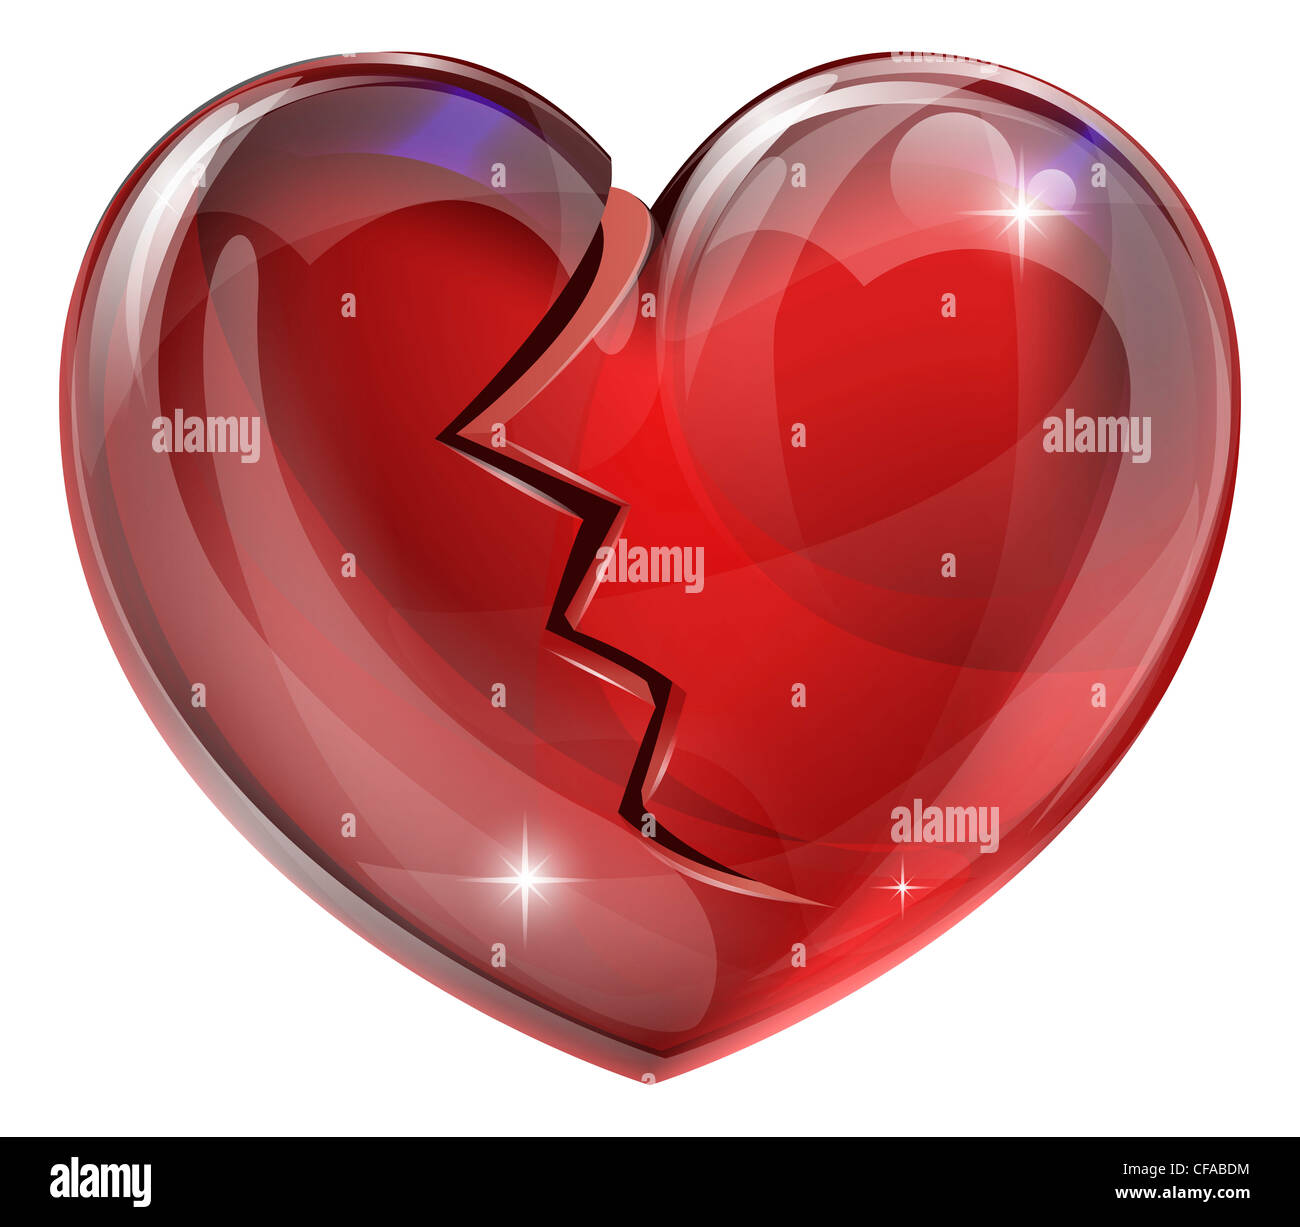 Illustration Of A Broken Heart With A Crack Concept For Heart Stock